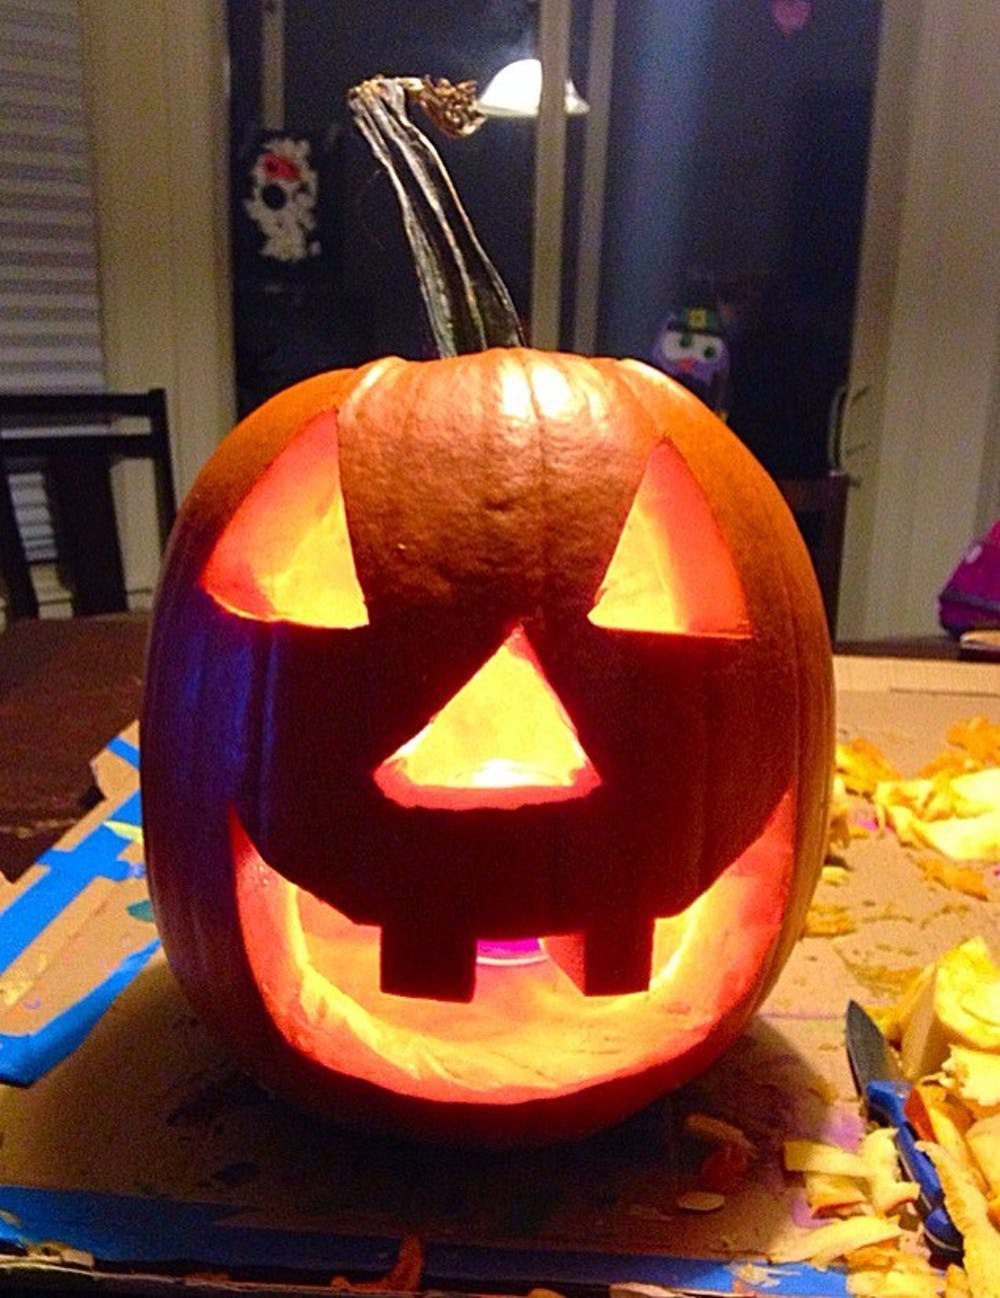 Five ways to spend your Halloween evening